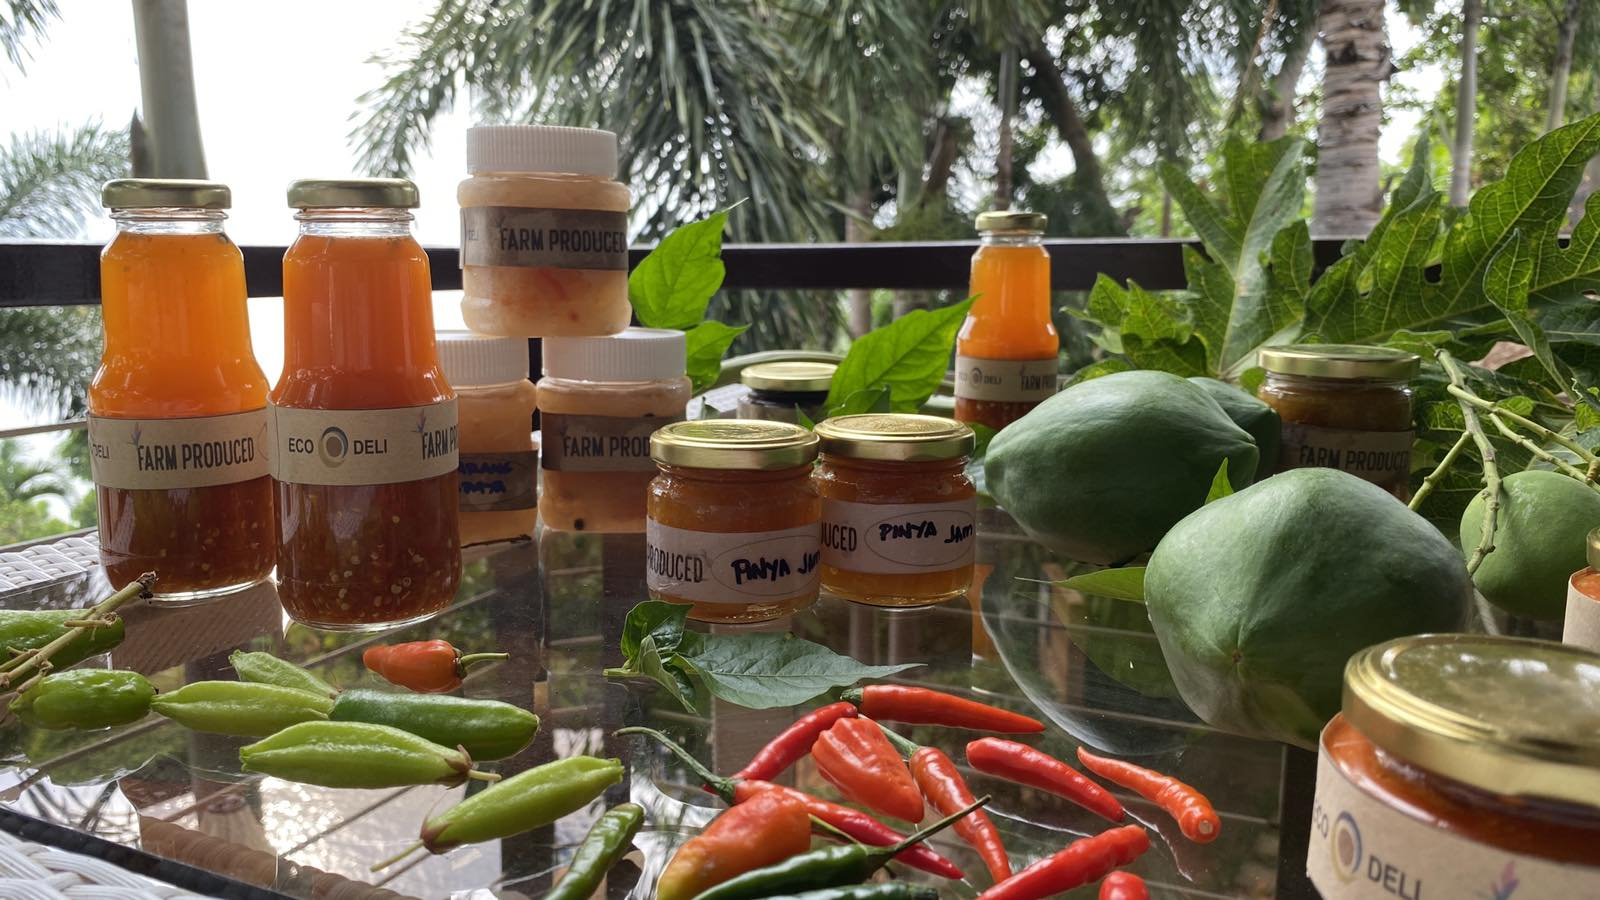 The Greenery Products